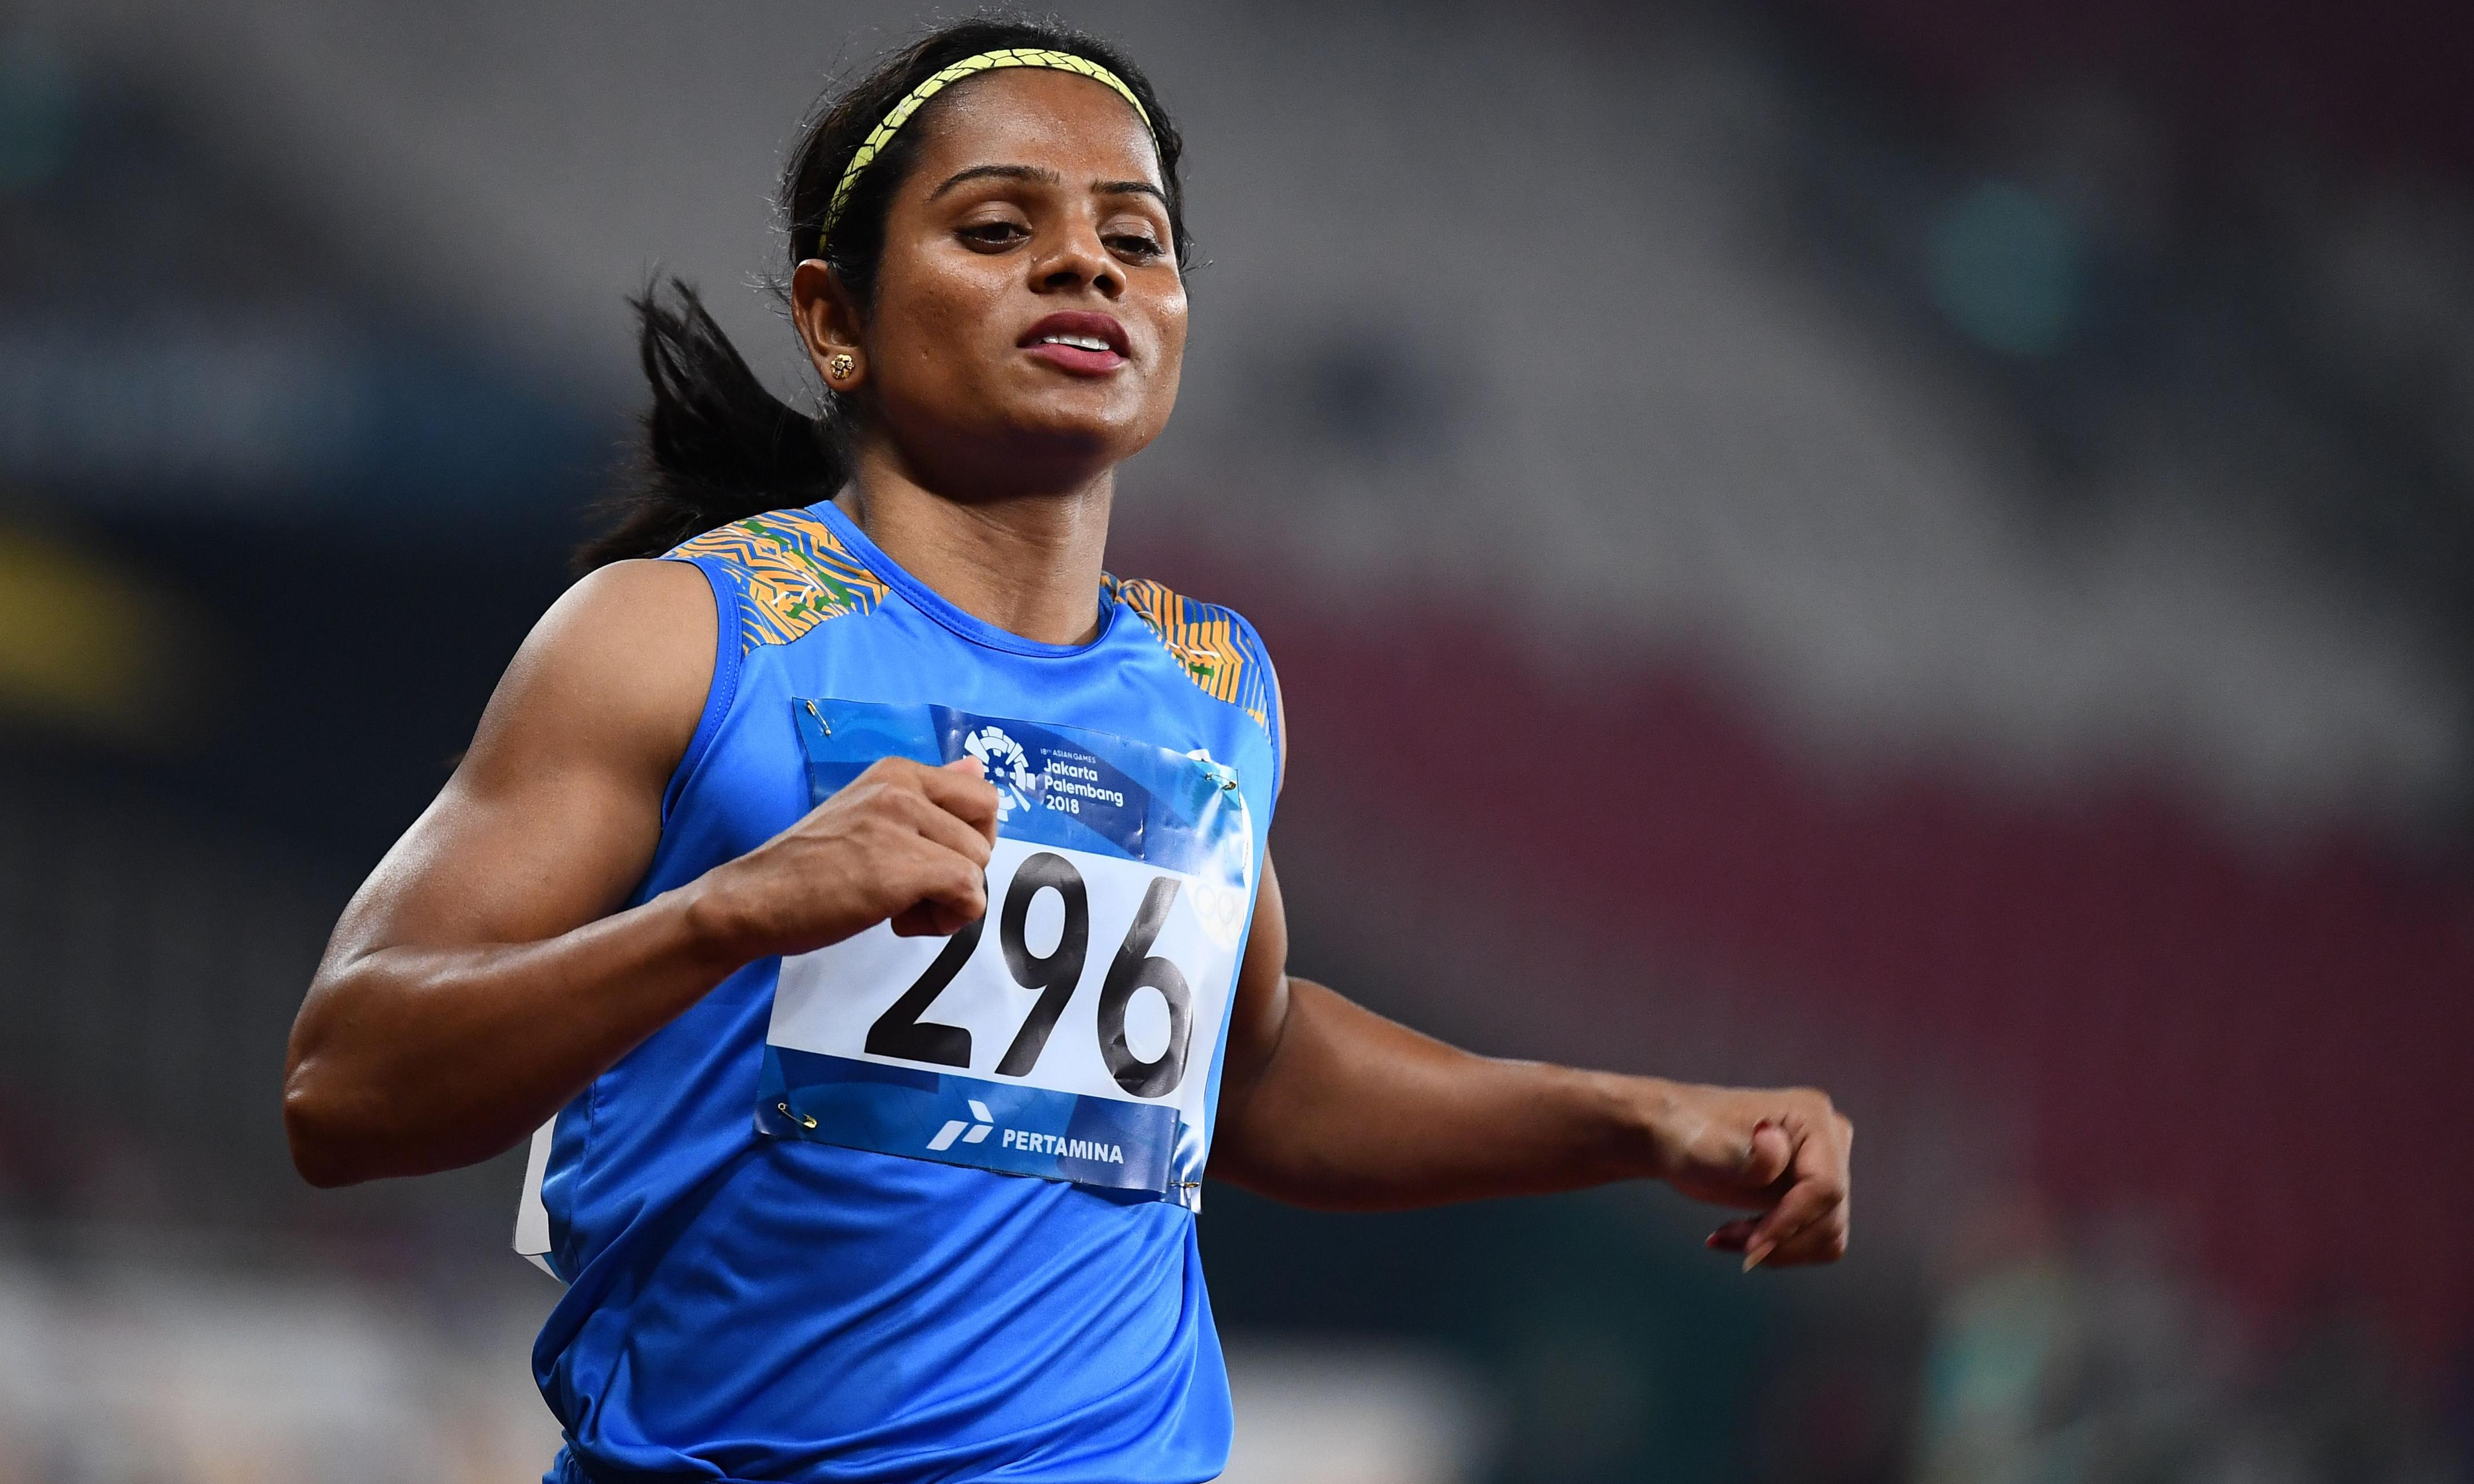 Sprinter Dutee Chand becomes India's first openly gay athlete